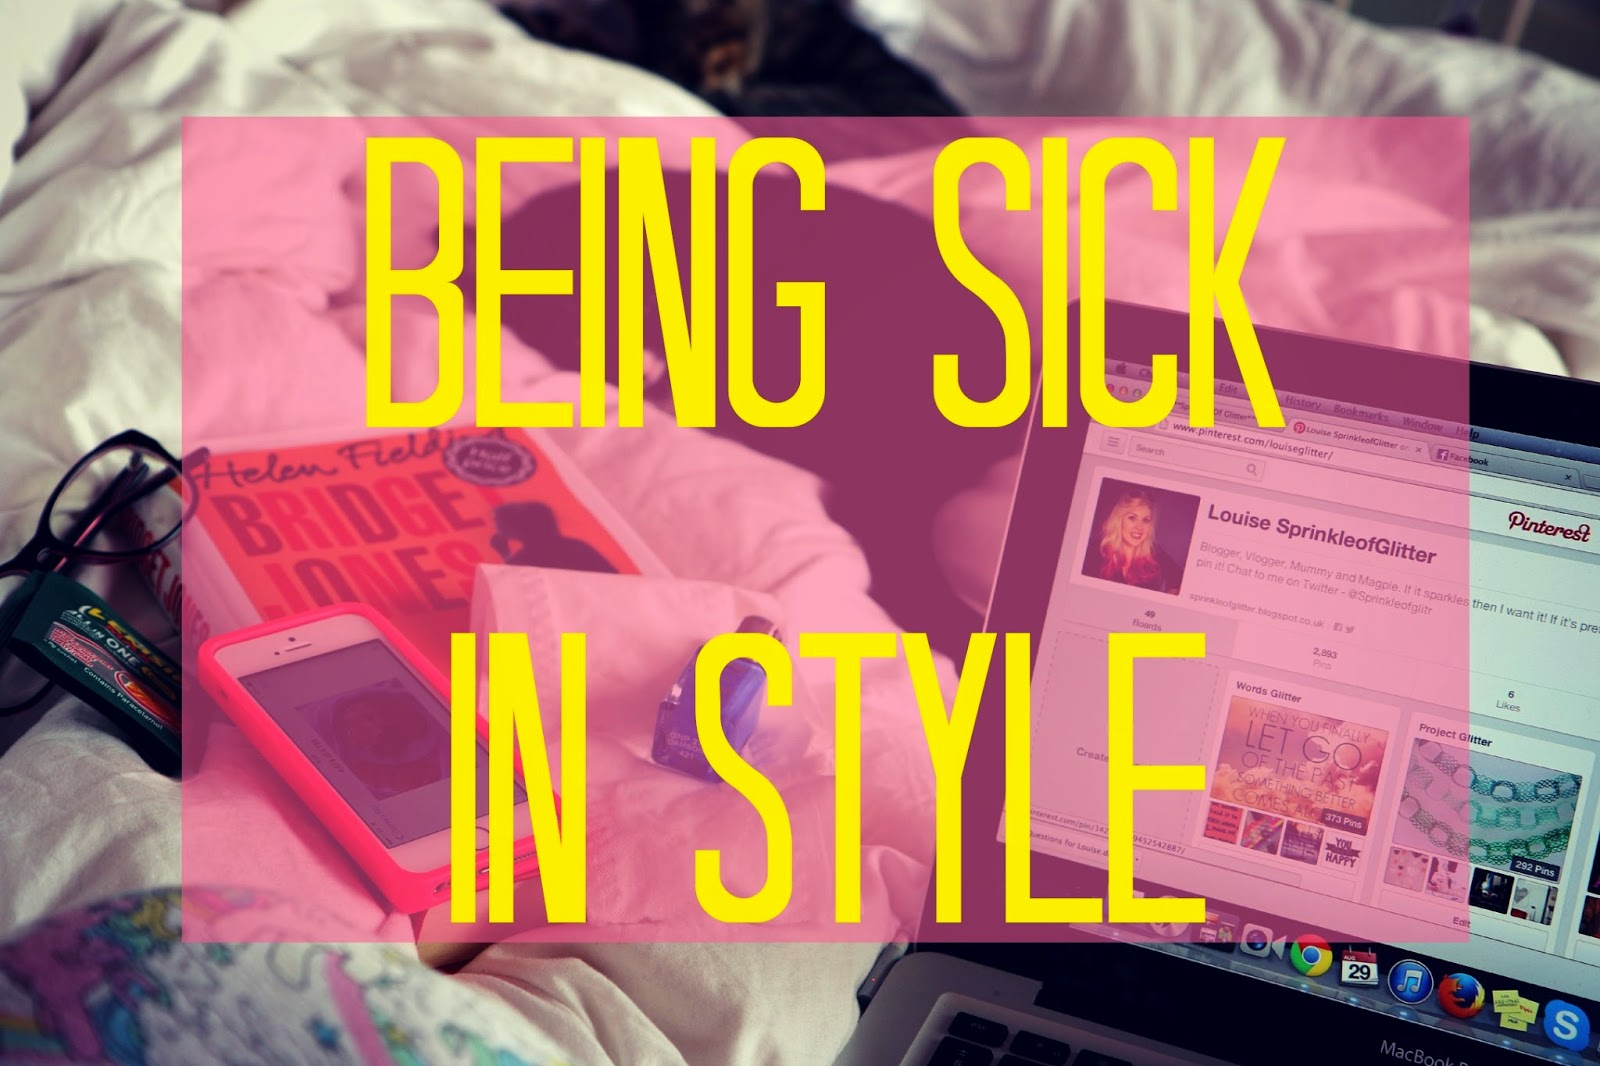 Quotes about being sick in bed funny quotes about being sick in bed - Styling Out A Sick Day